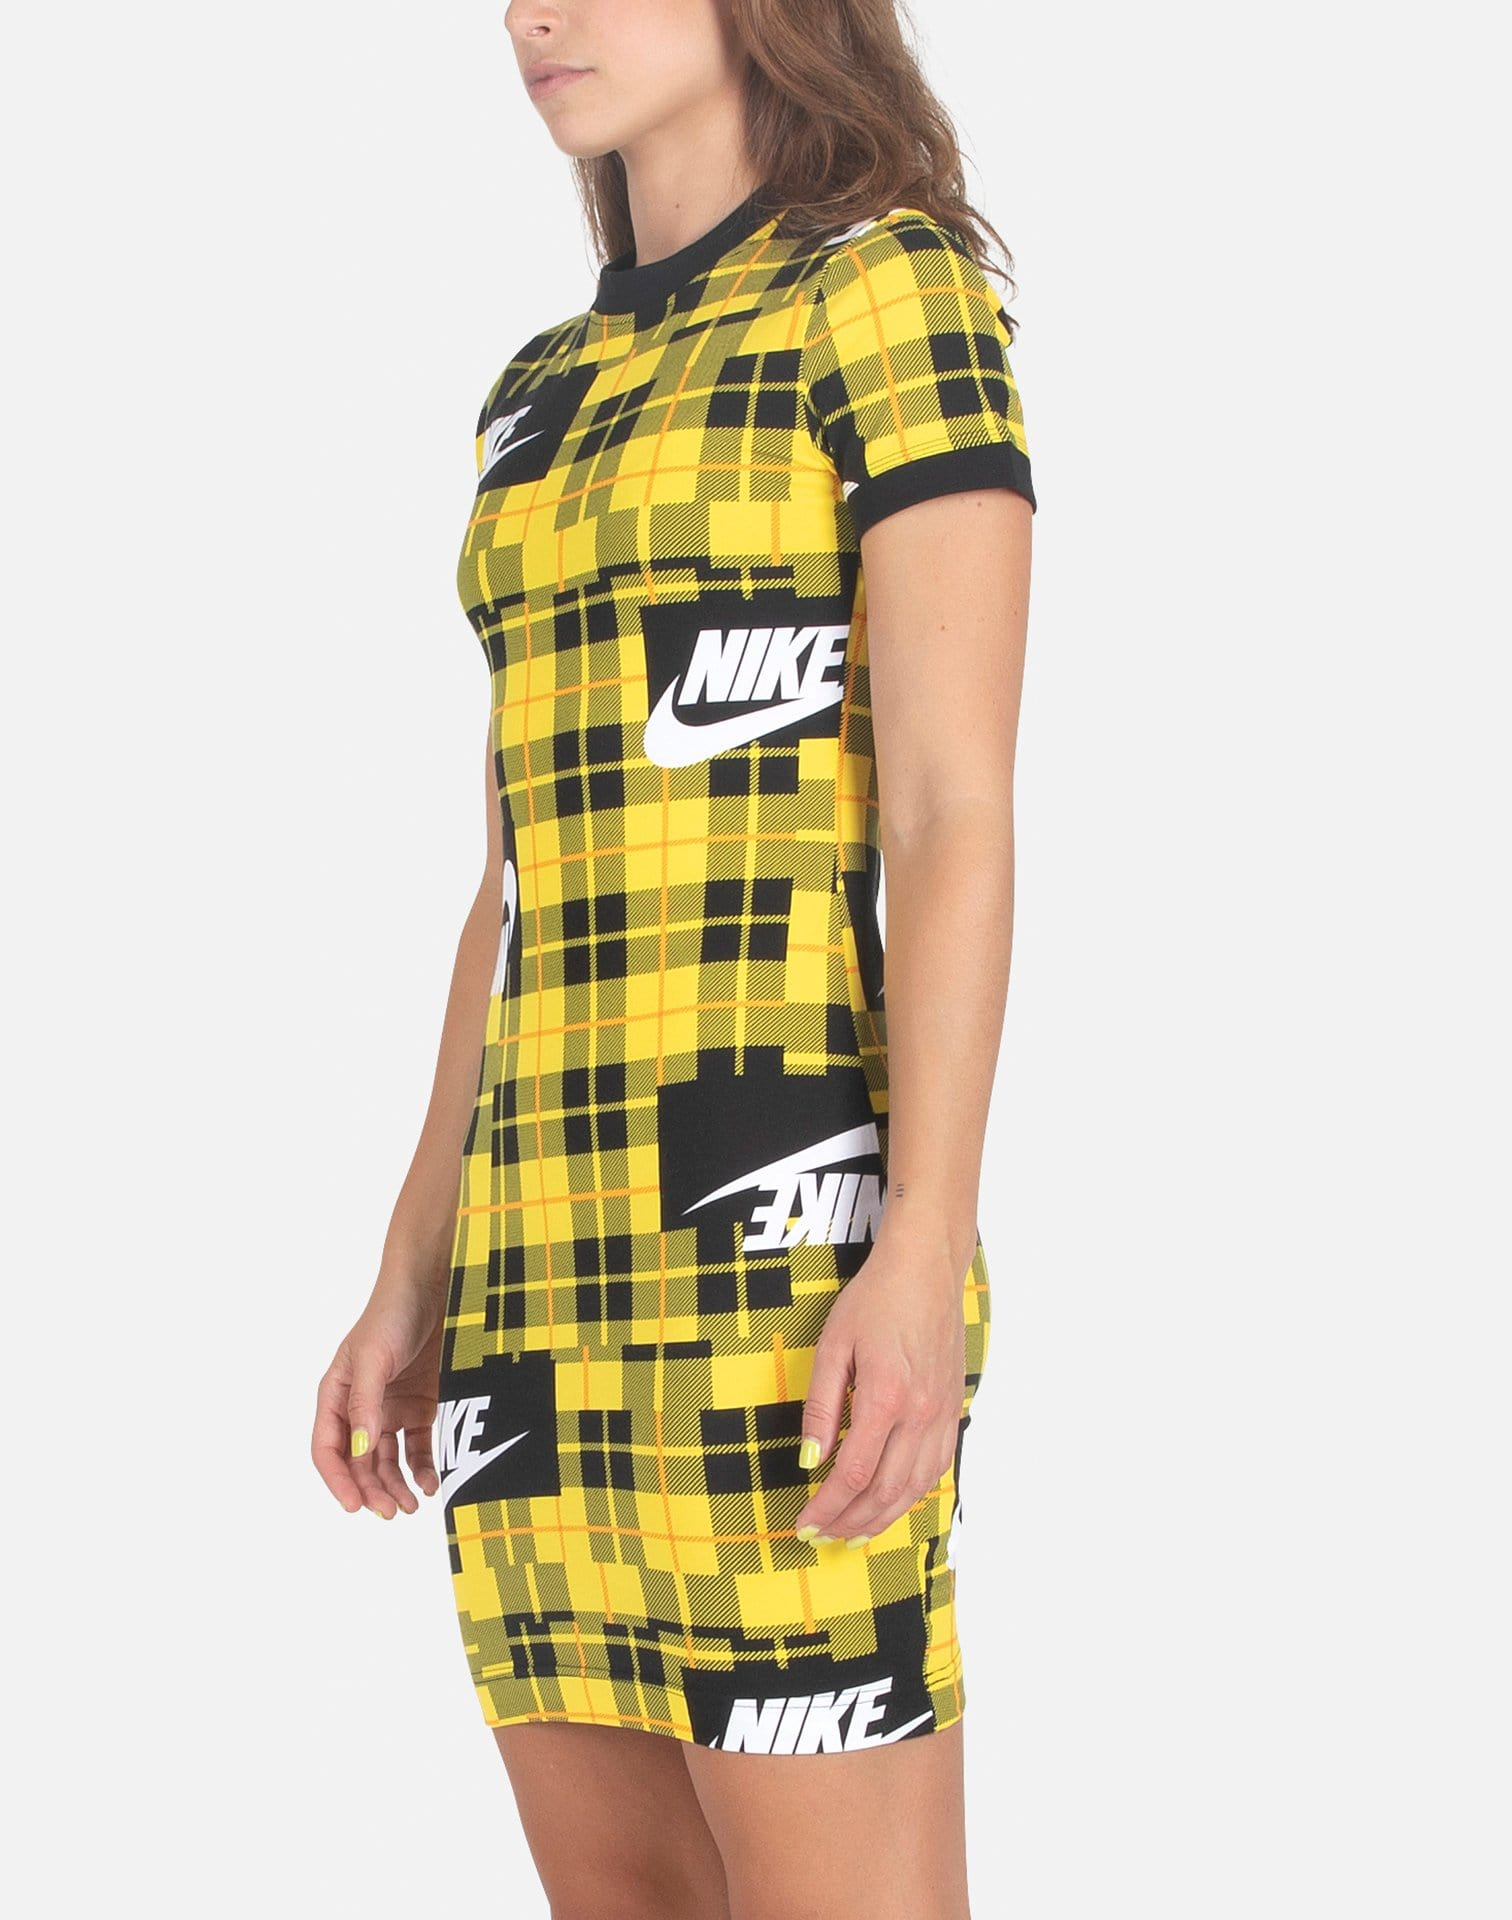 NSW PLAID DRESS – DTLR